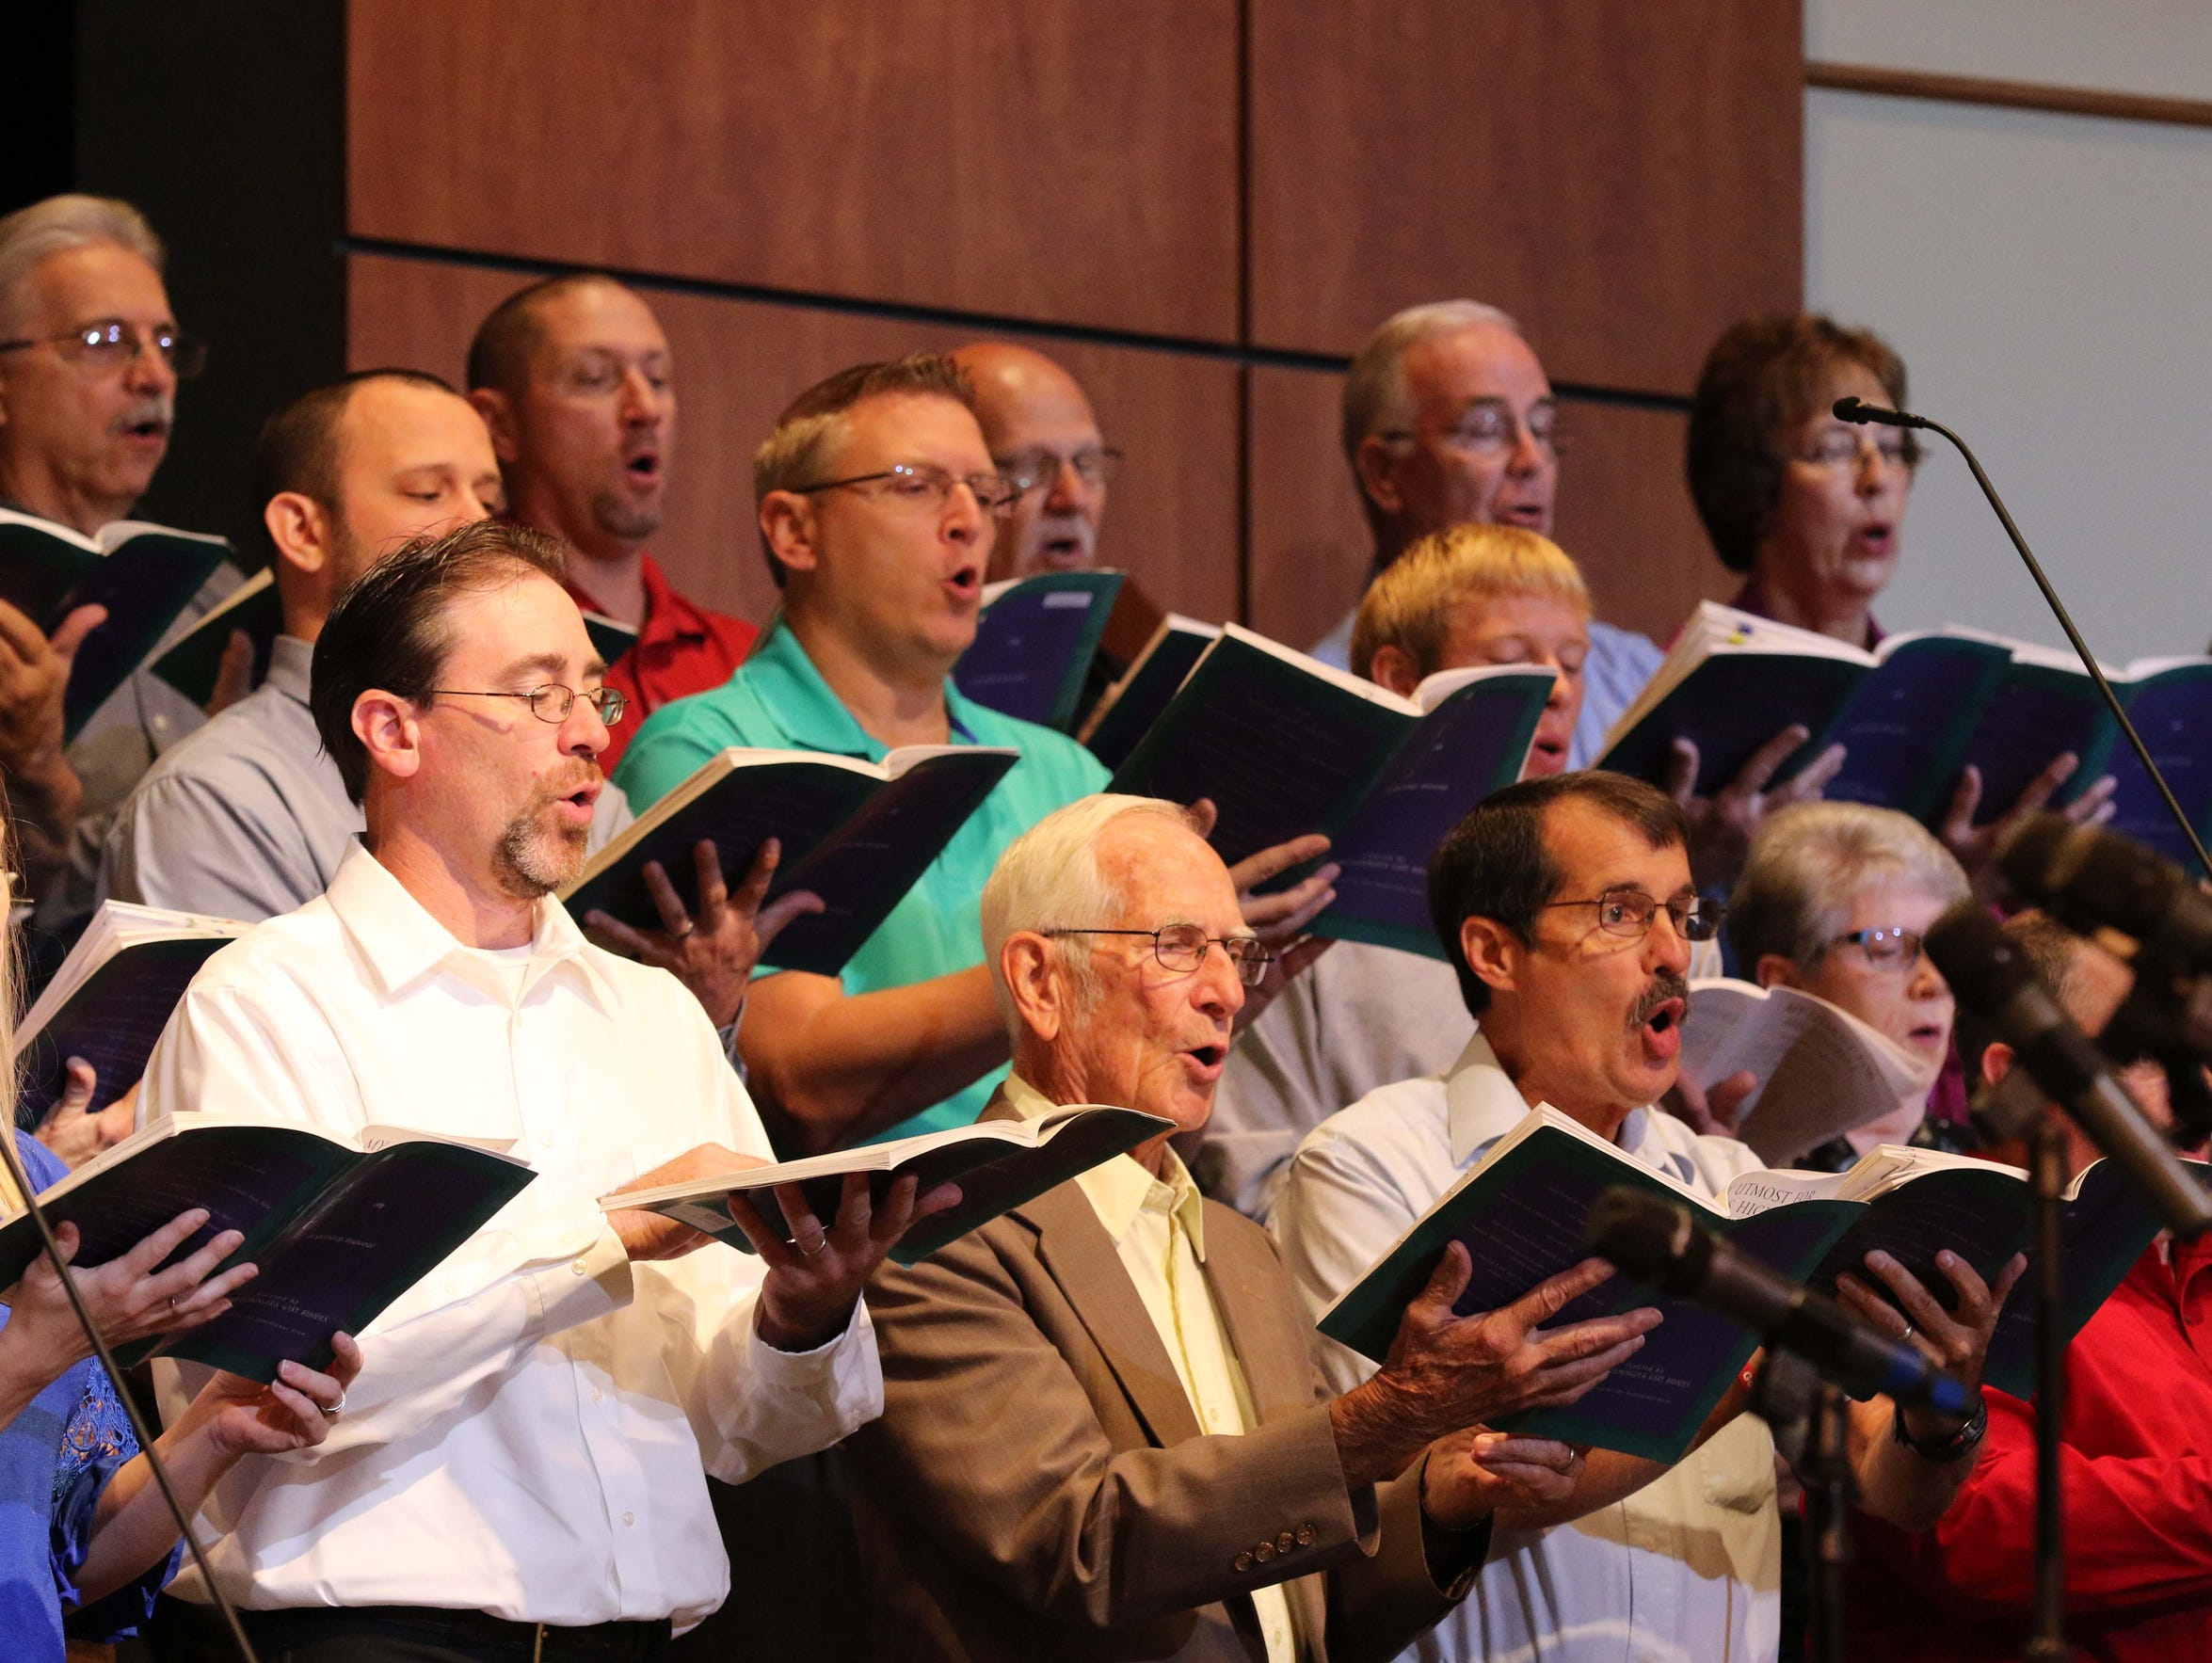 Calvary Baptist in Republic is celebrating its 50th